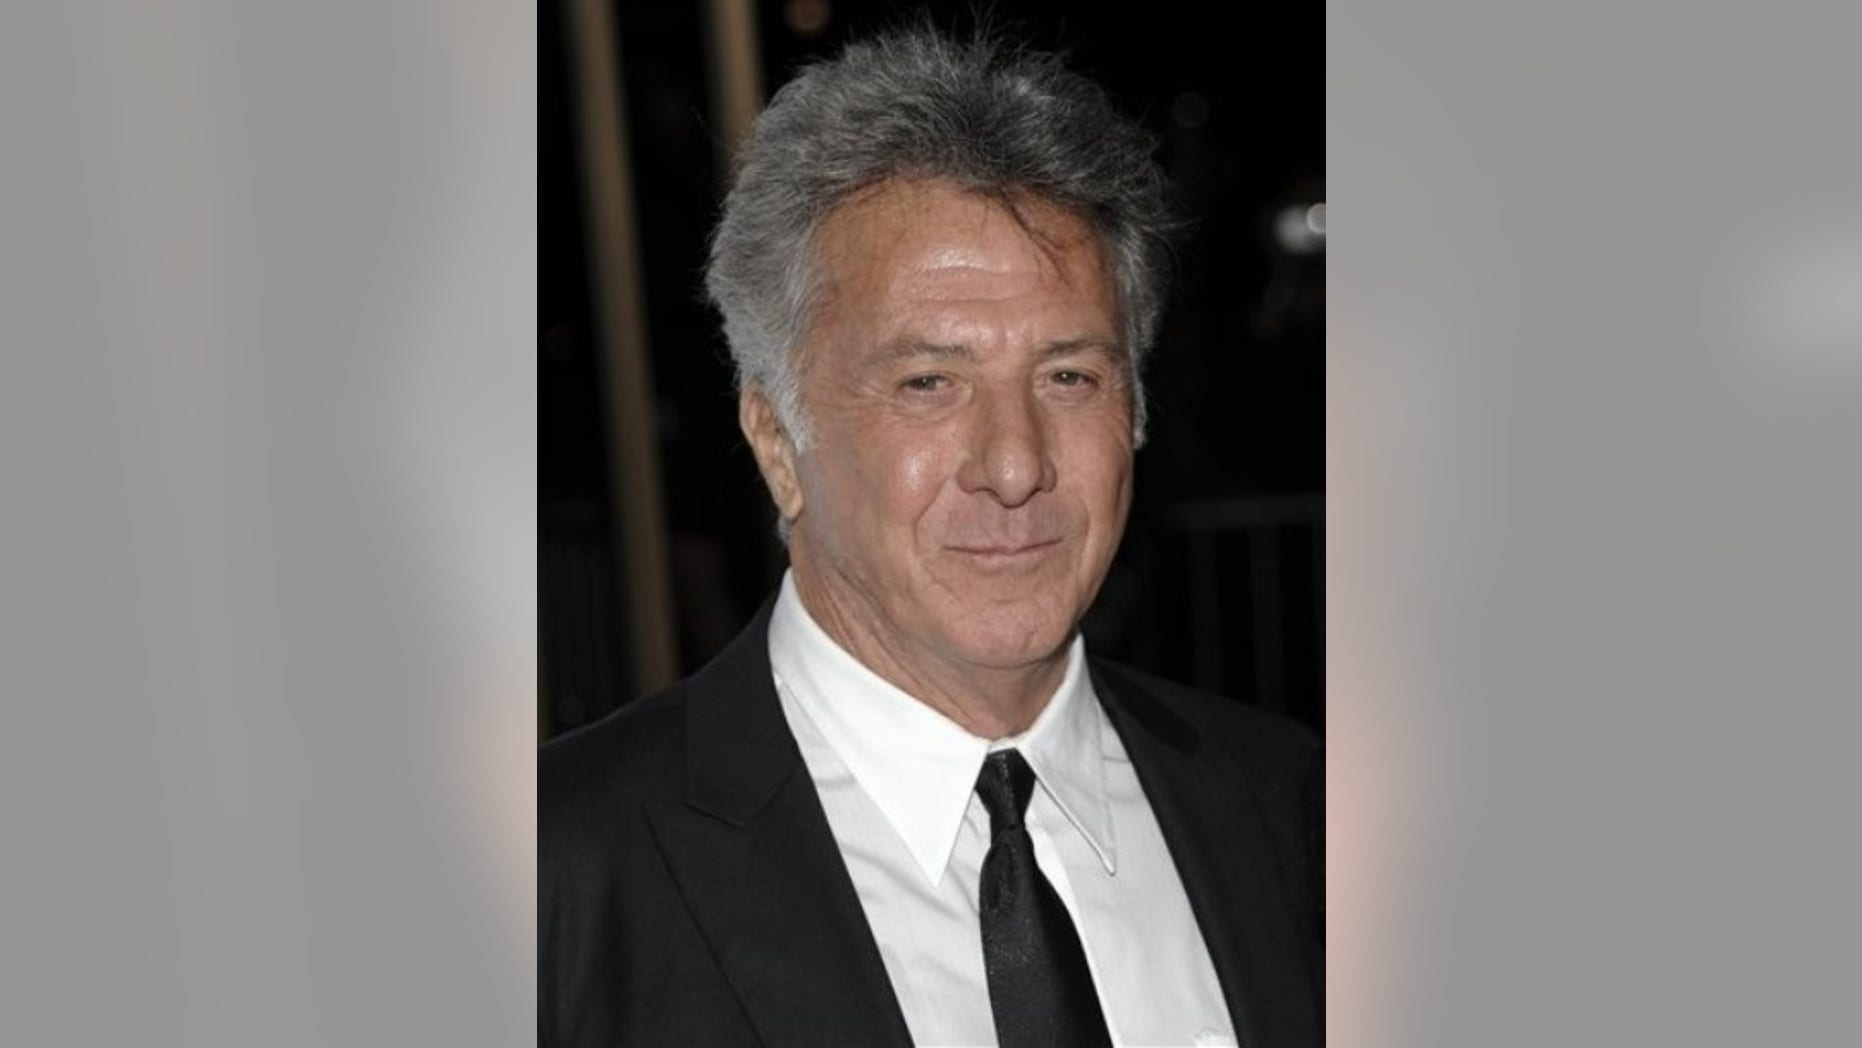 """Actor Dustin Hoffman arrives at the premiere of the feature film """"Barney's Version"""" in Los Angeles on Saturday, Nov. 6, 2010. (AP Photo/Dan Steinberg)"""